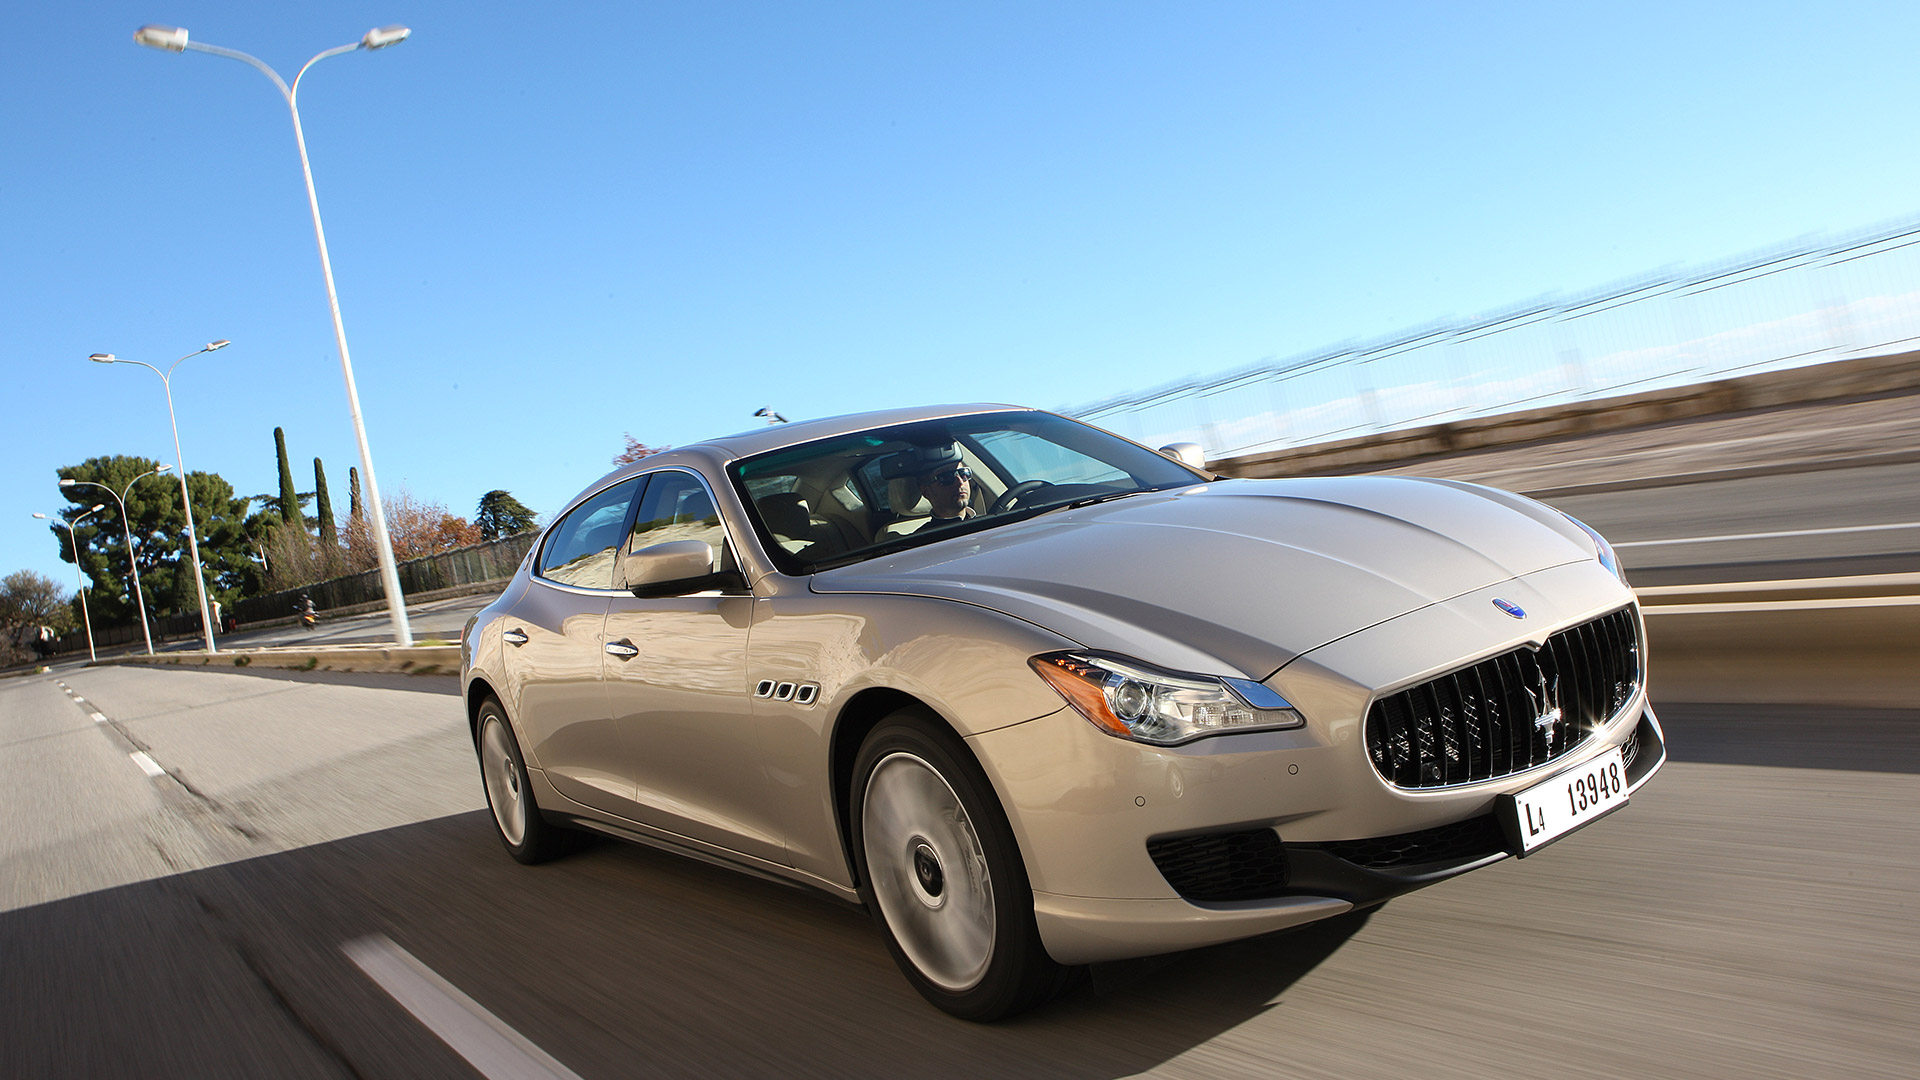 maserati quattroporte 2015 gts price mileage reviews specification gallery overdrive. Black Bedroom Furniture Sets. Home Design Ideas